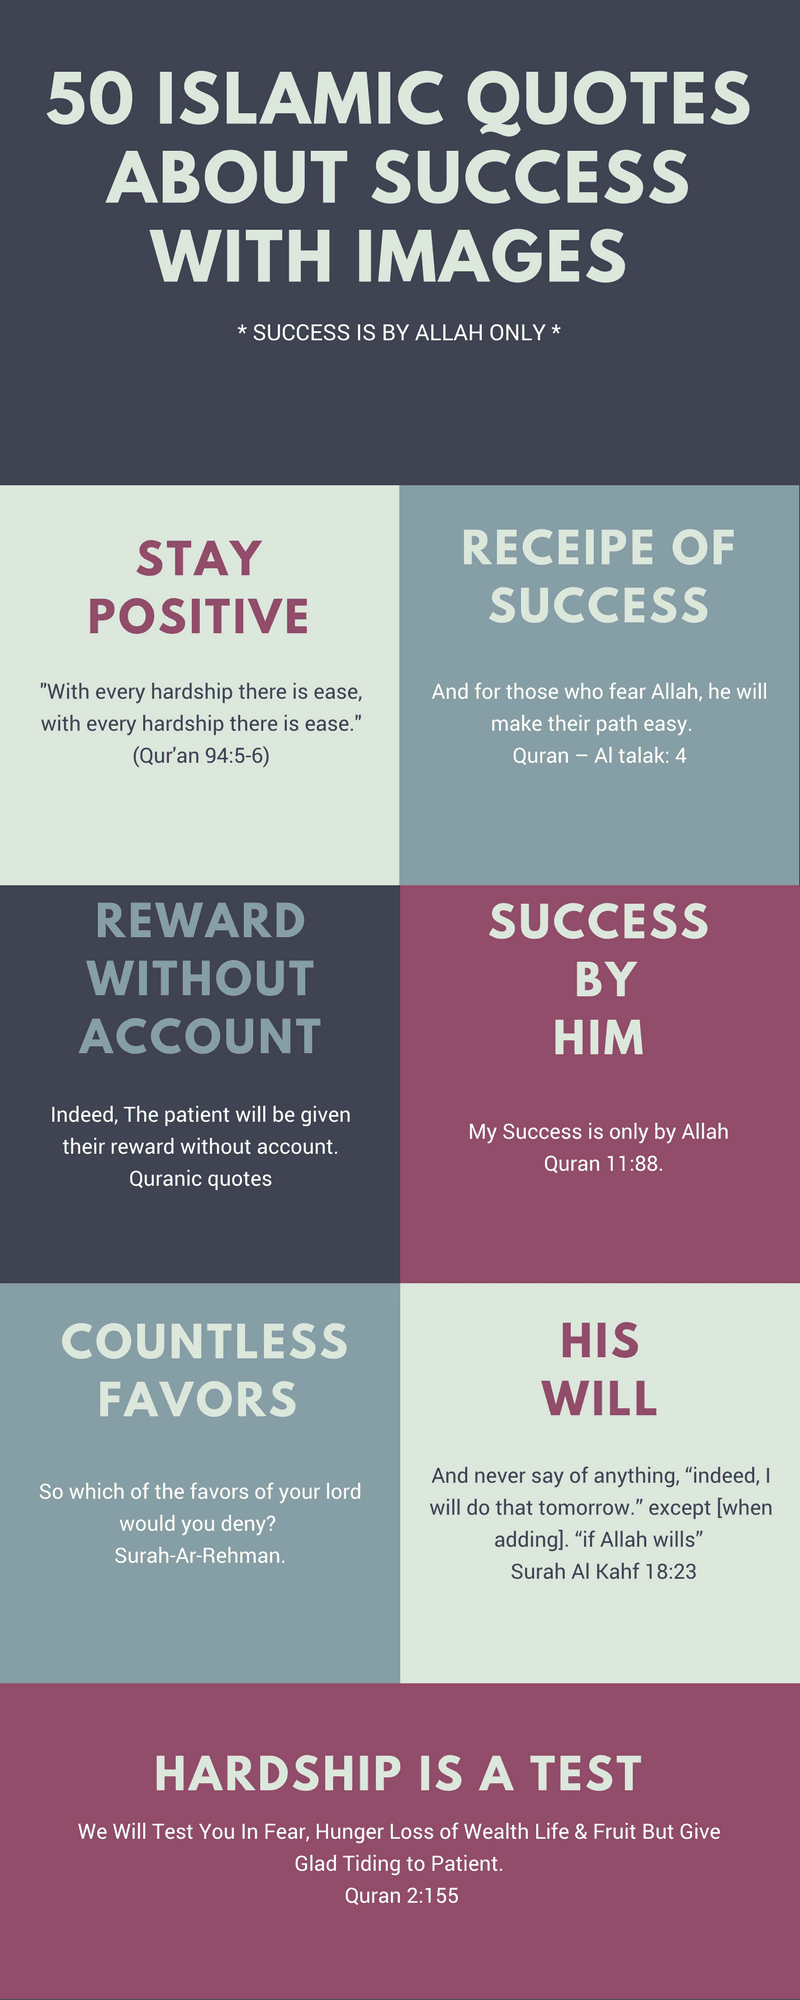 50 Islamic Quotes About Success With Images